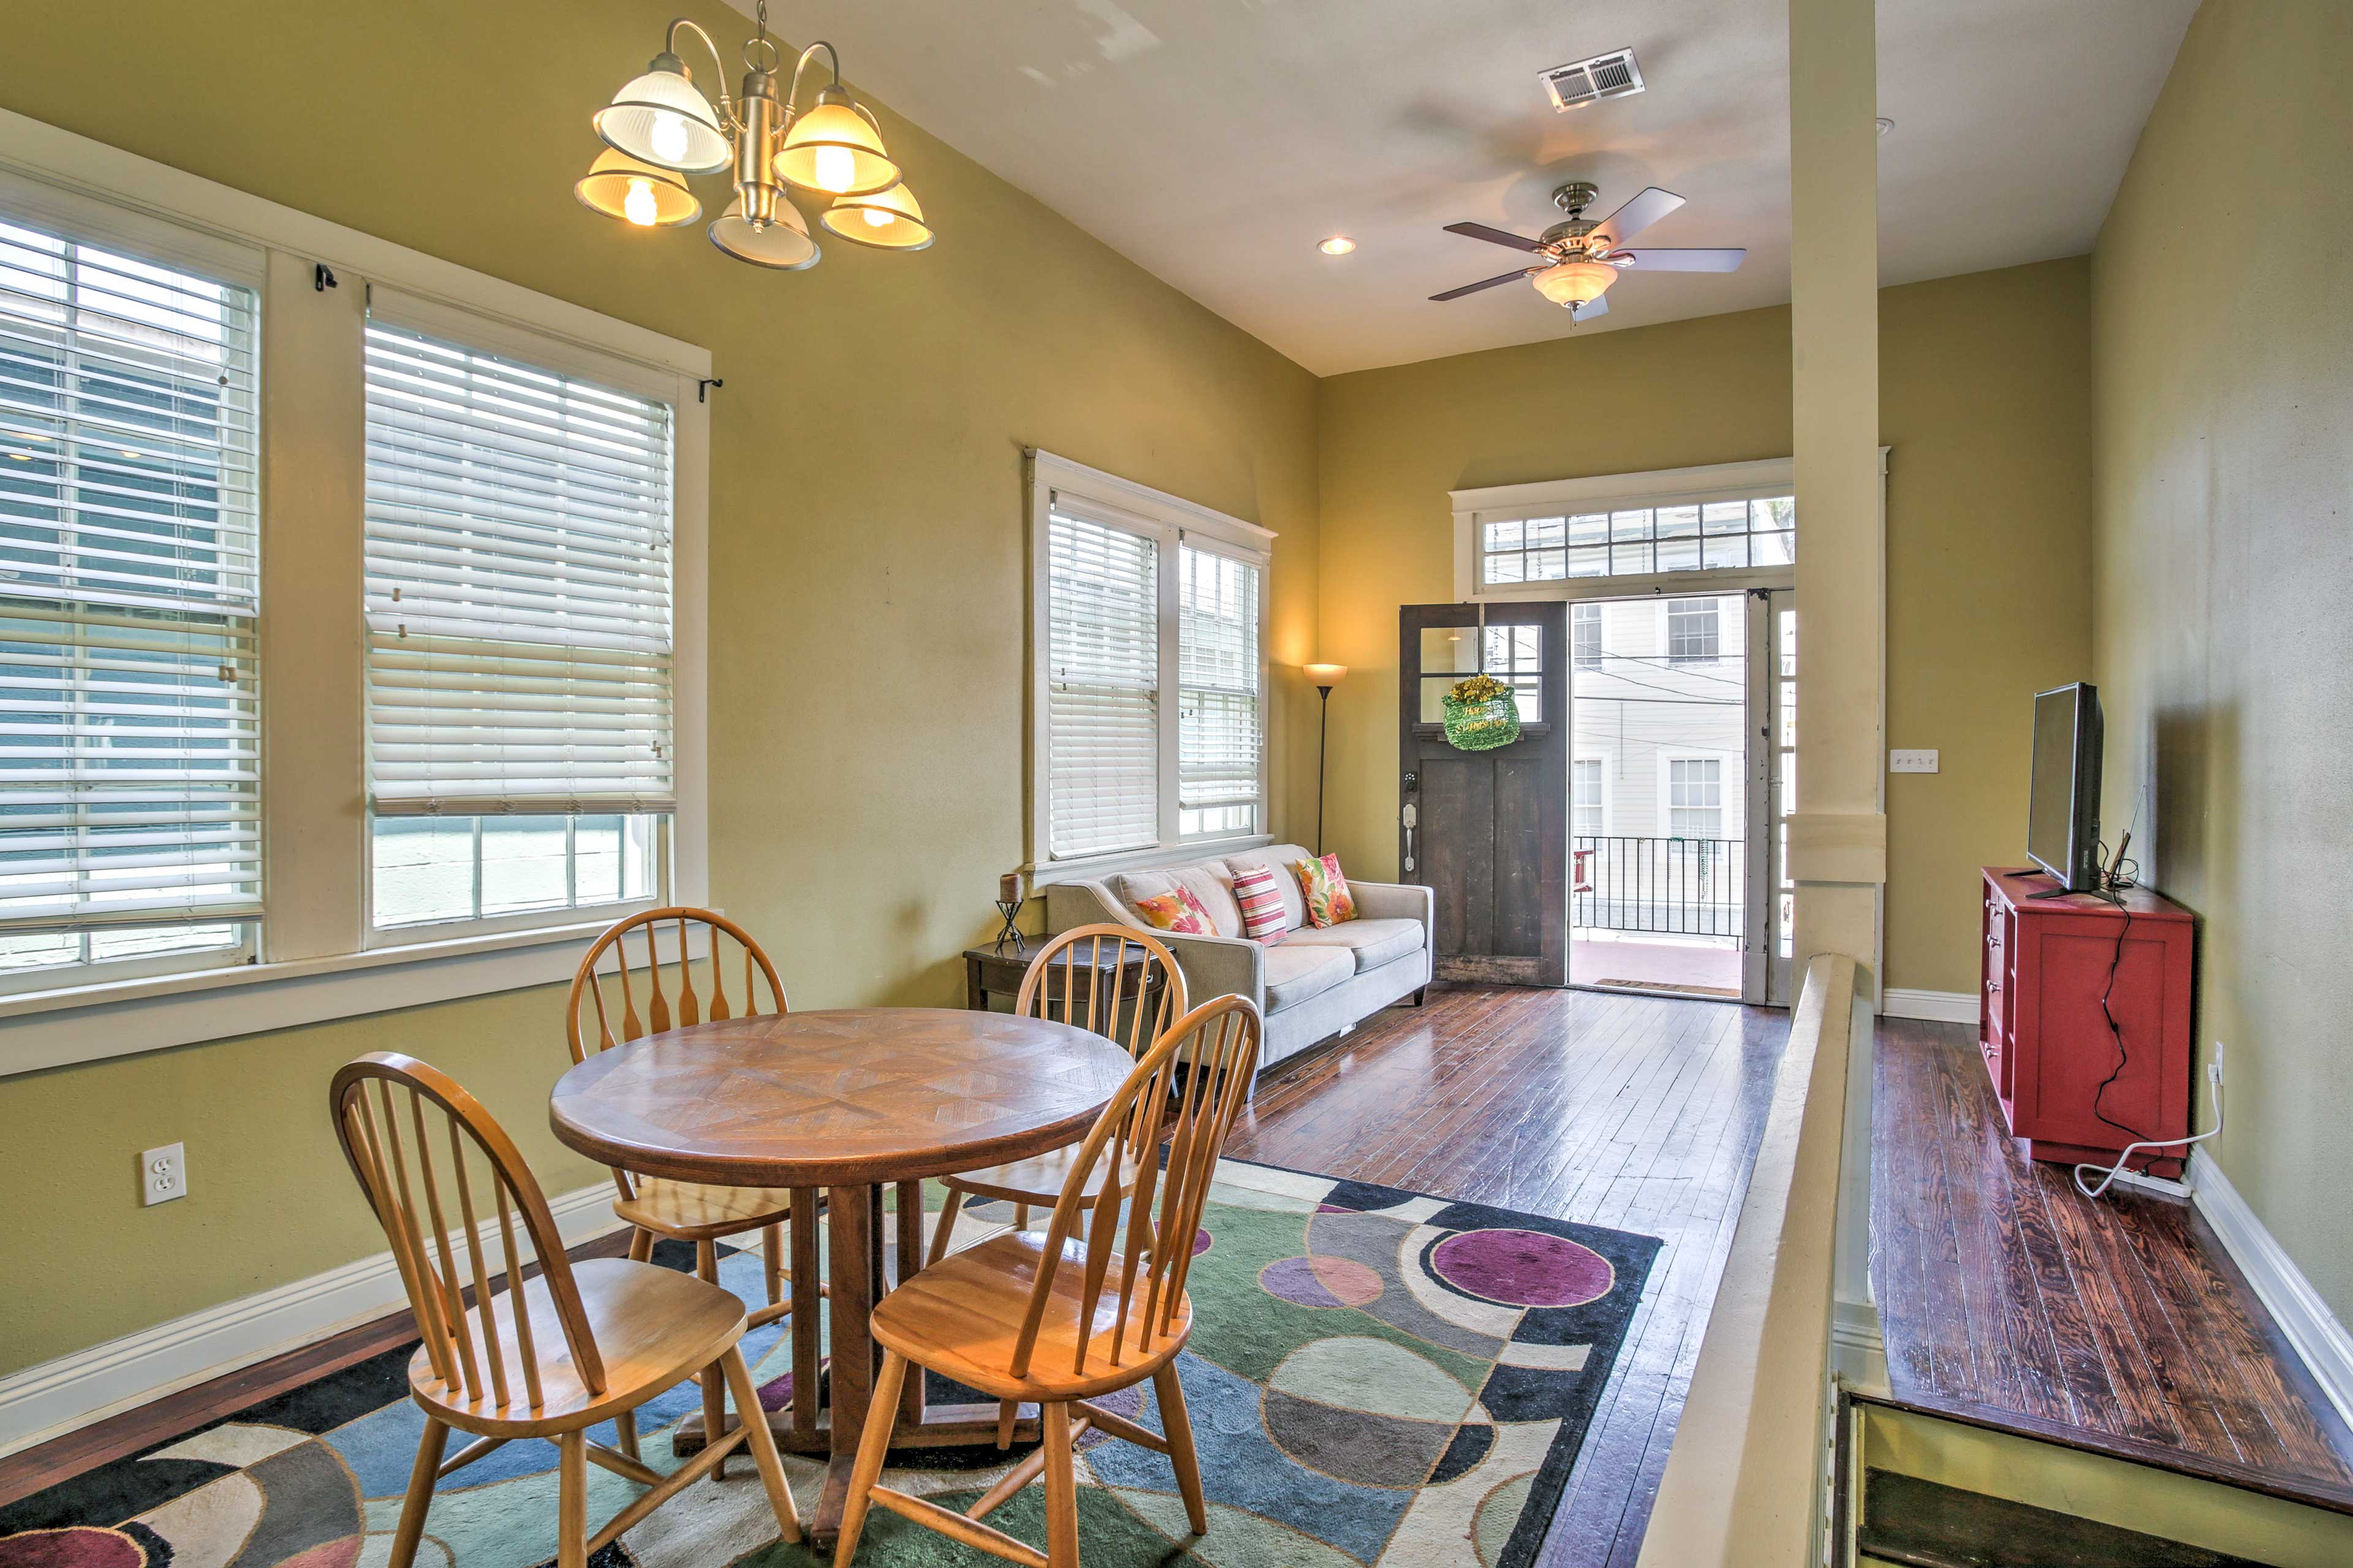 The 1,800-square-foot interior features high ceilings and hardwood floors.